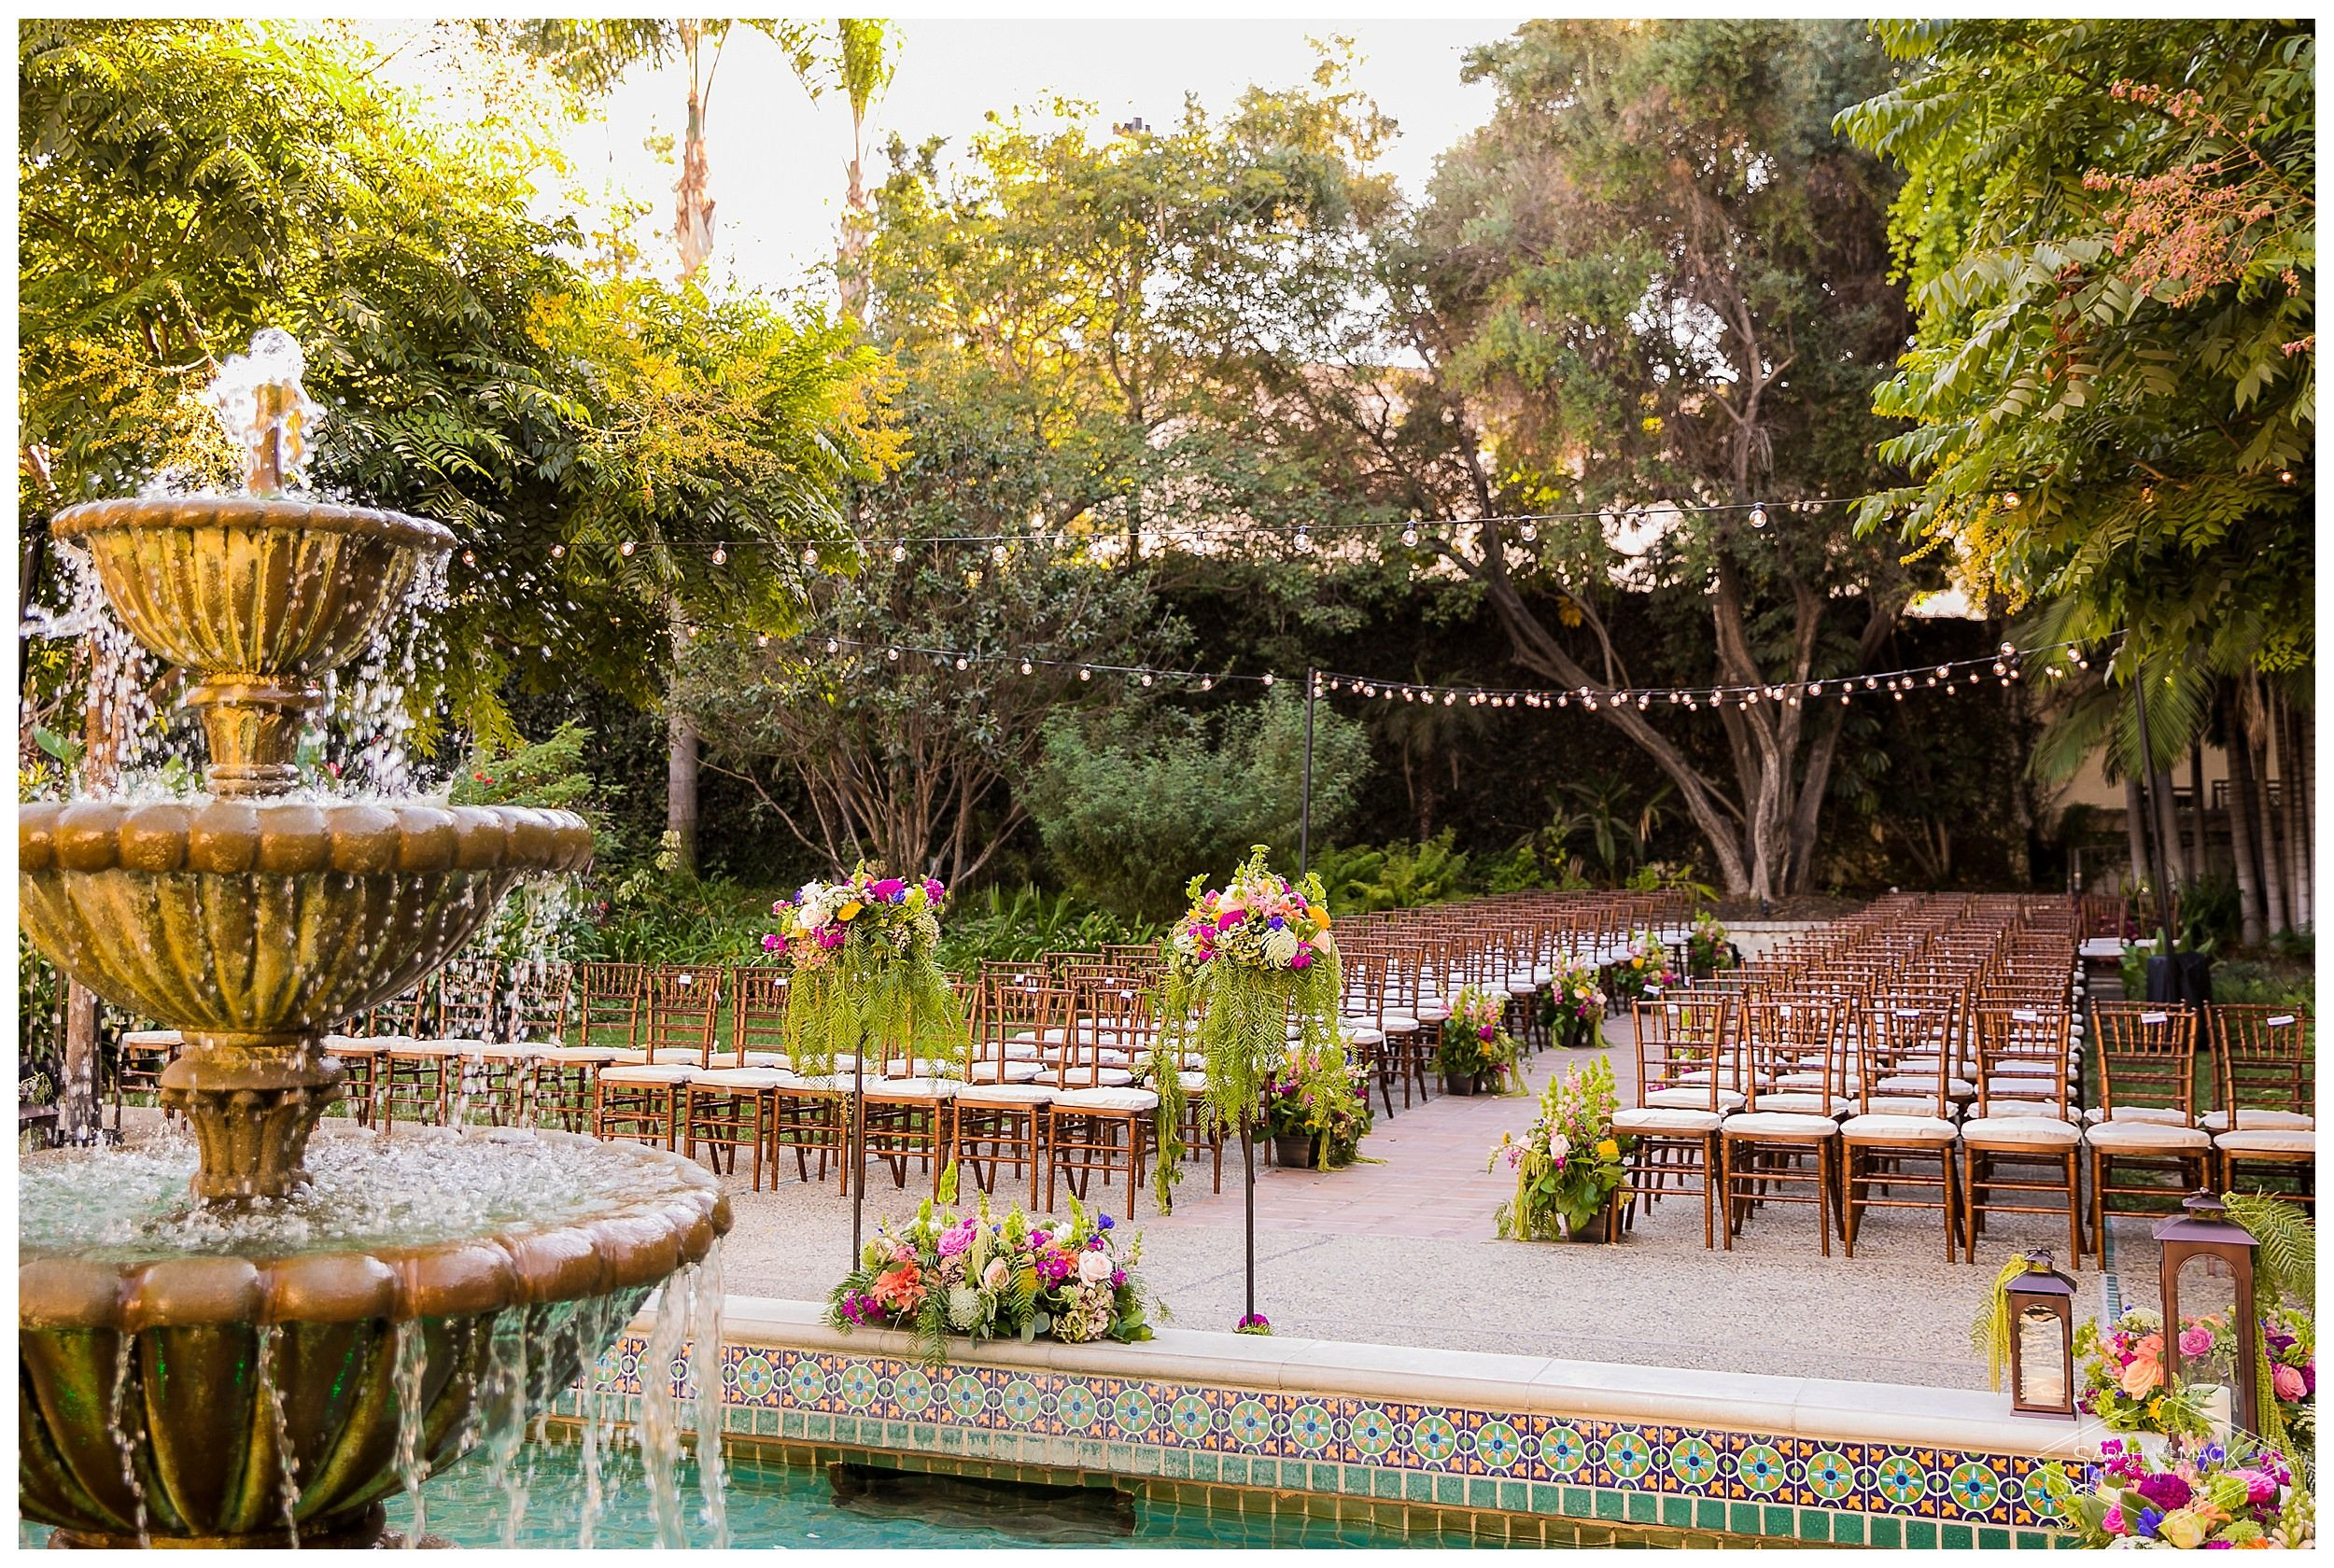 426fe68105b580d5b19f97846d497221 - Los Angeles River Center And Gardens Wedding Photos